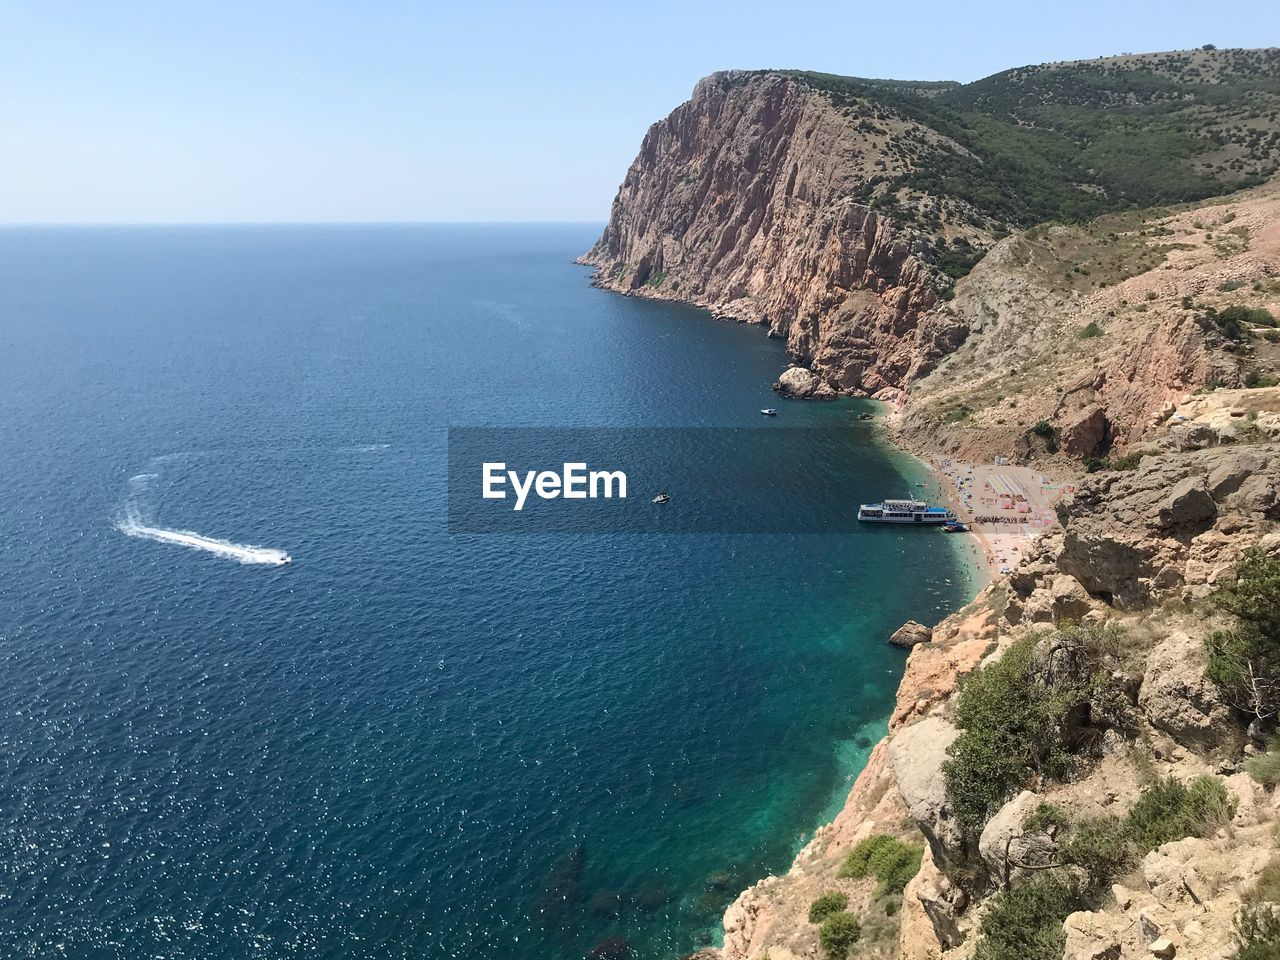 sea, scenics - nature, water, beauty in nature, tranquil scene, tranquility, nature, day, mountain, land, blue, nautical vessel, no people, sky, high angle view, transportation, idyllic, mode of transportation, cliff, horizon over water, mountain range, outdoors, formation